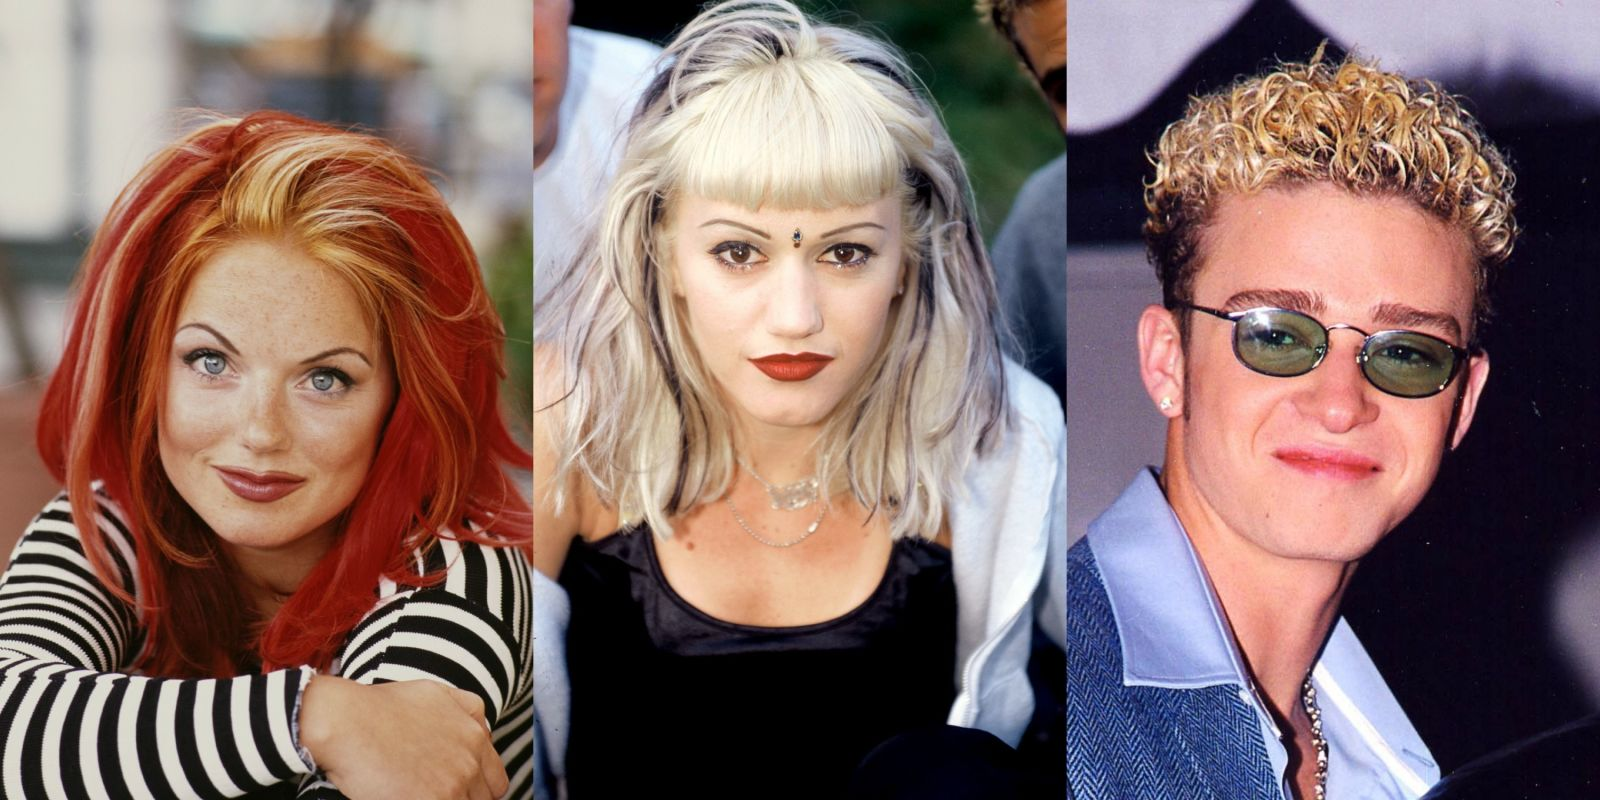 20 embarrassing 90s beauty trends - bad nineties hair and makeup